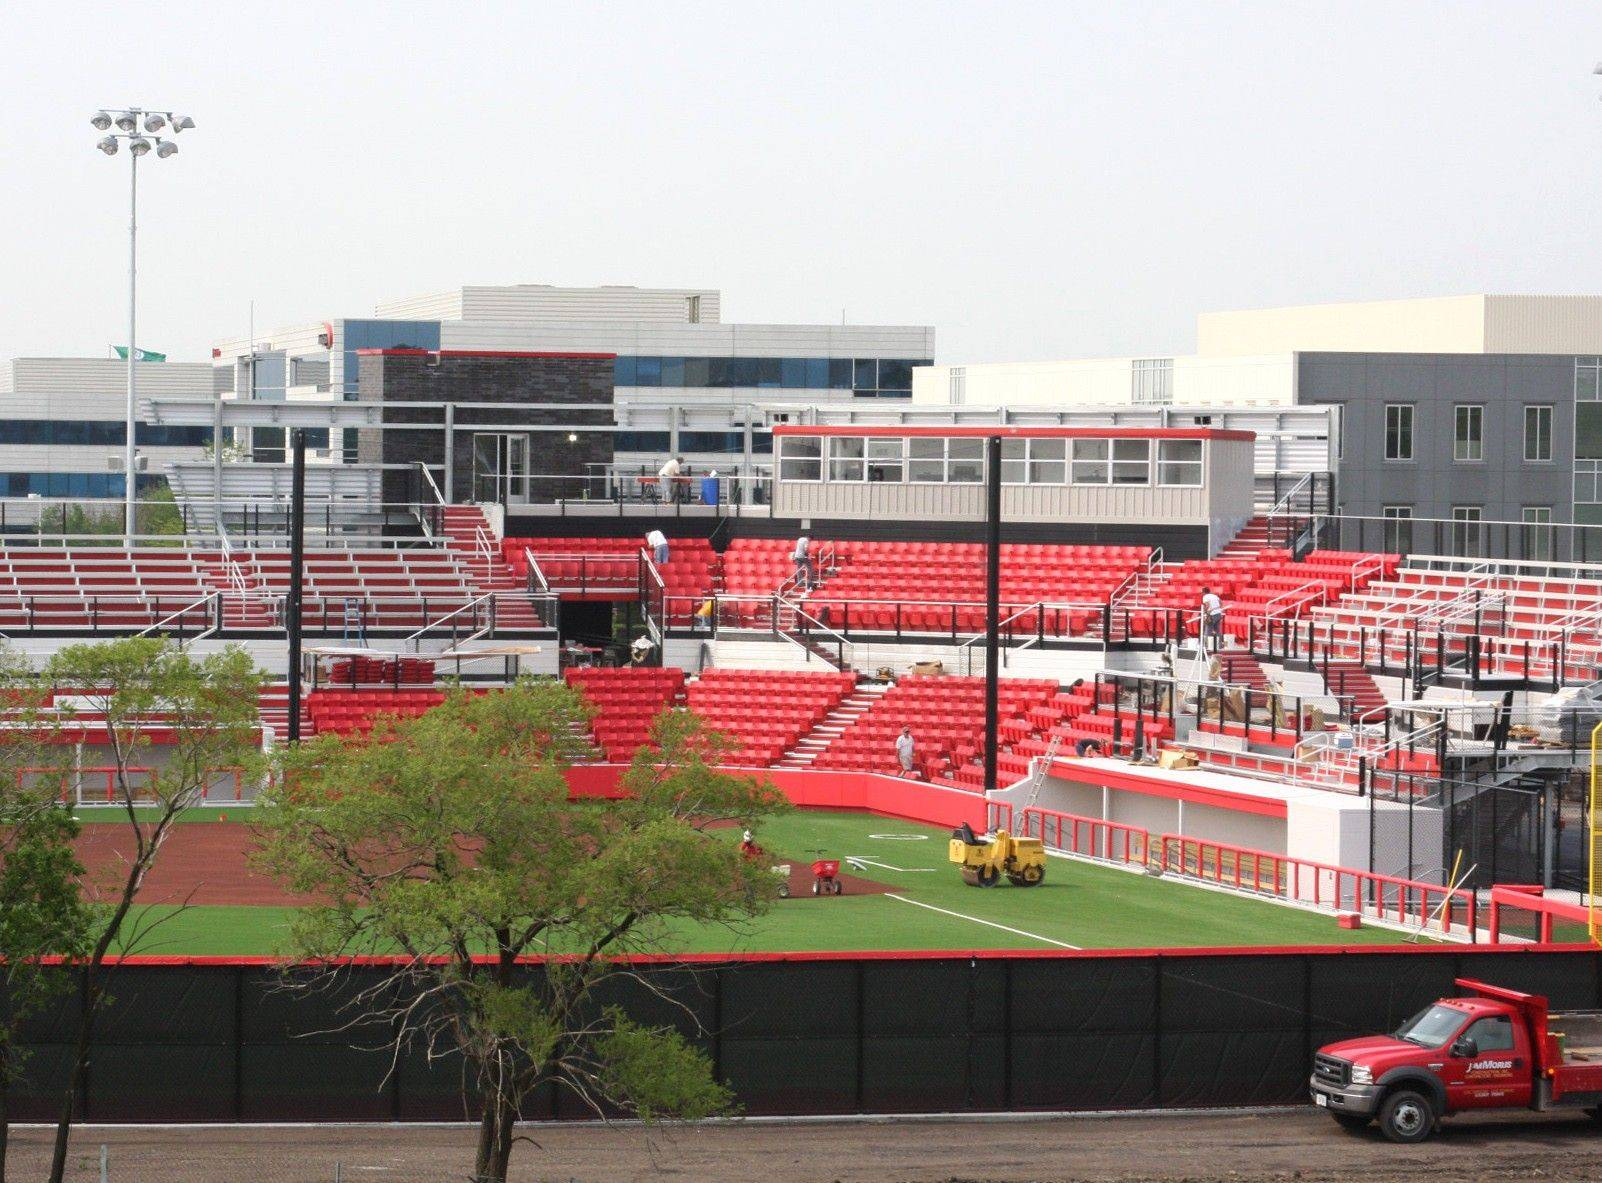 The Chicago Bandits professional women's softball team will play an exhibition game Saturday to inaugurate the team's new home at Rosemont Stadium.